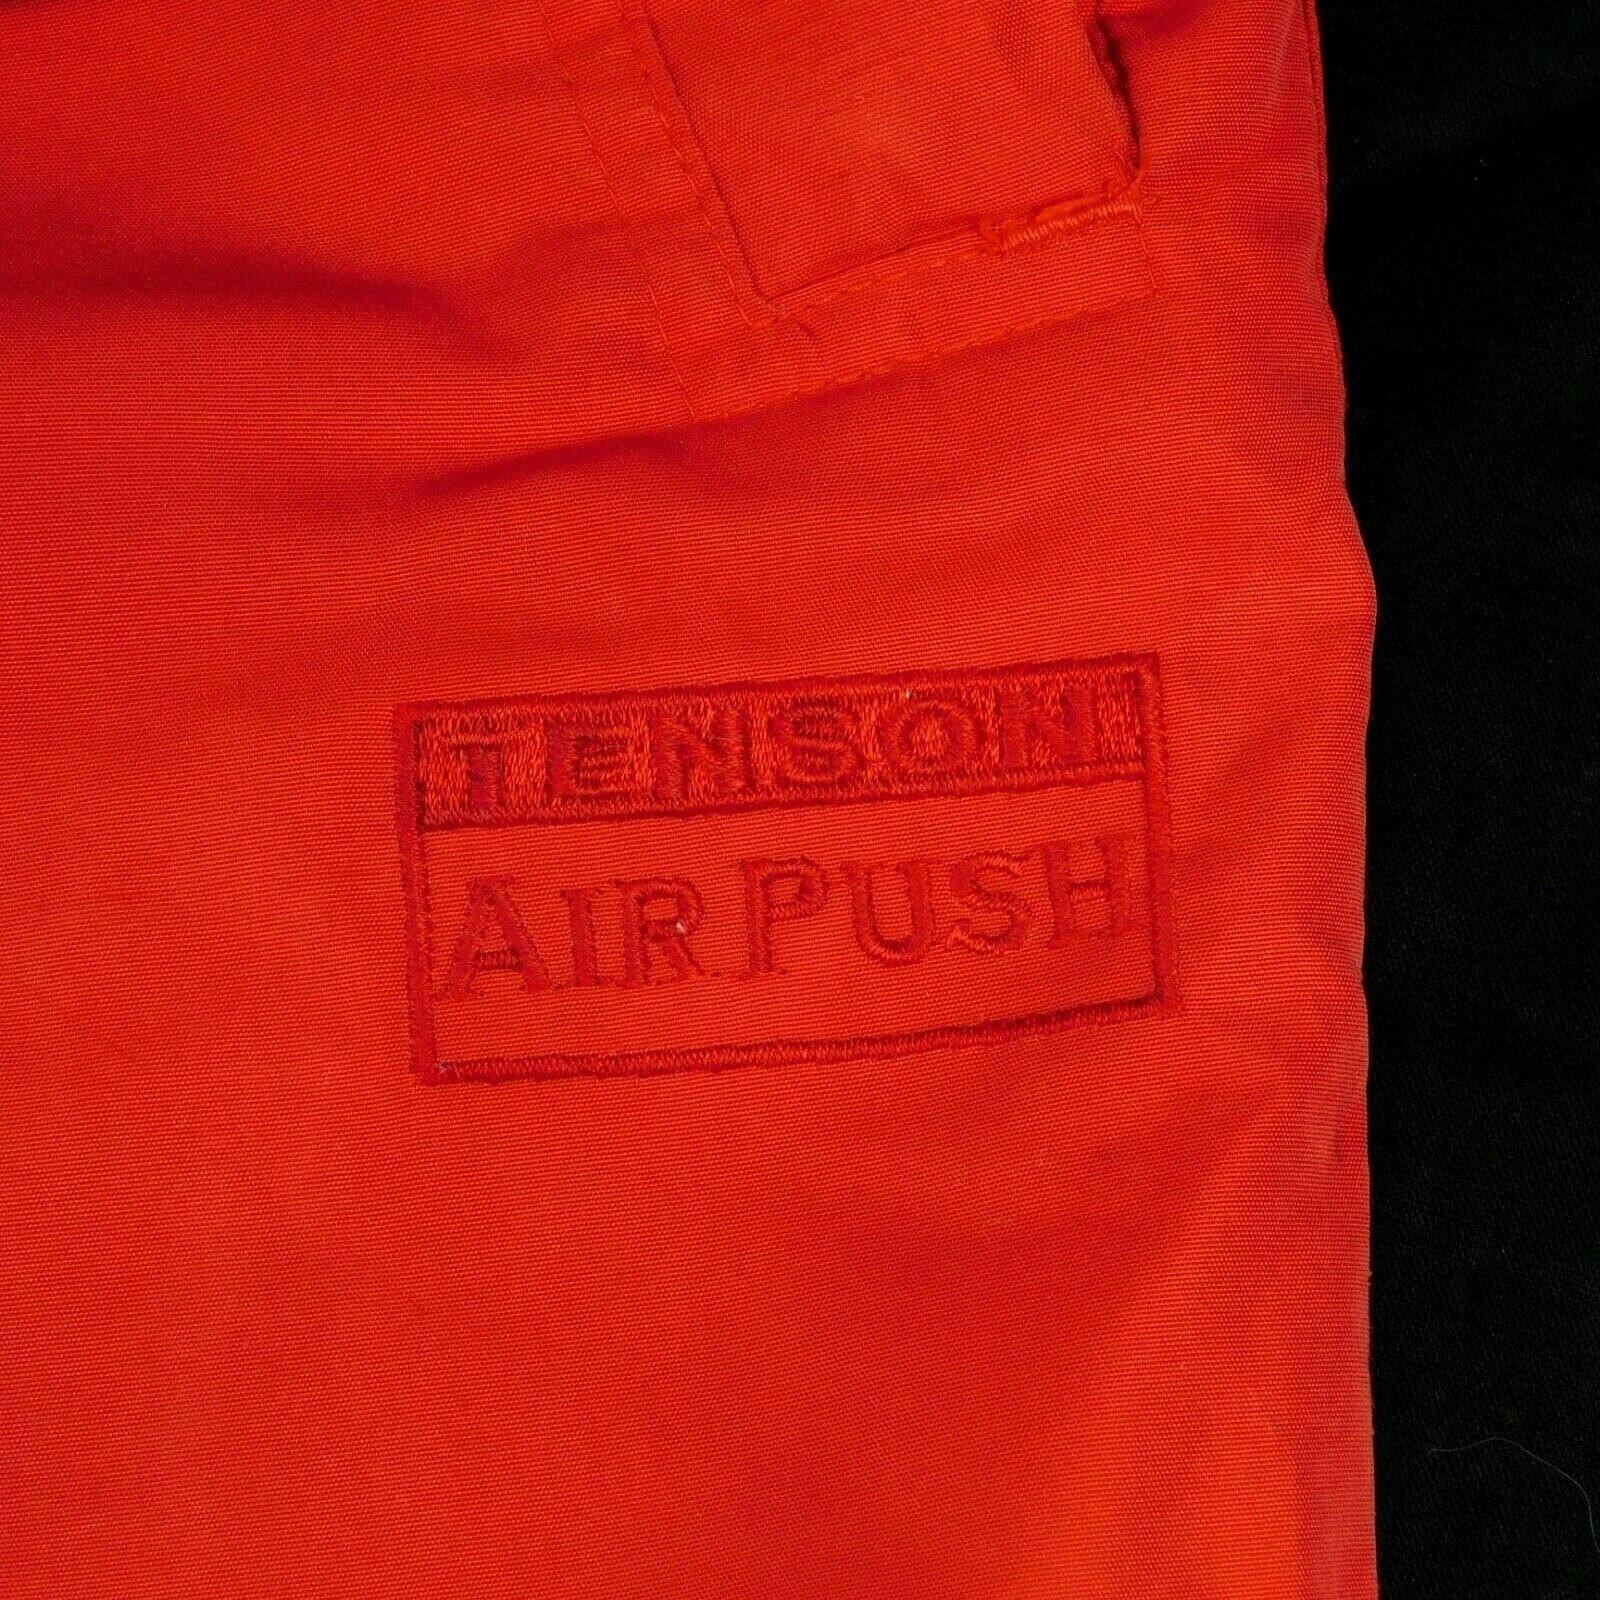 Tenson AirPush Red Ski Pants Sz XL W 34-38 L 33 Elastic Waist Draw String image 5